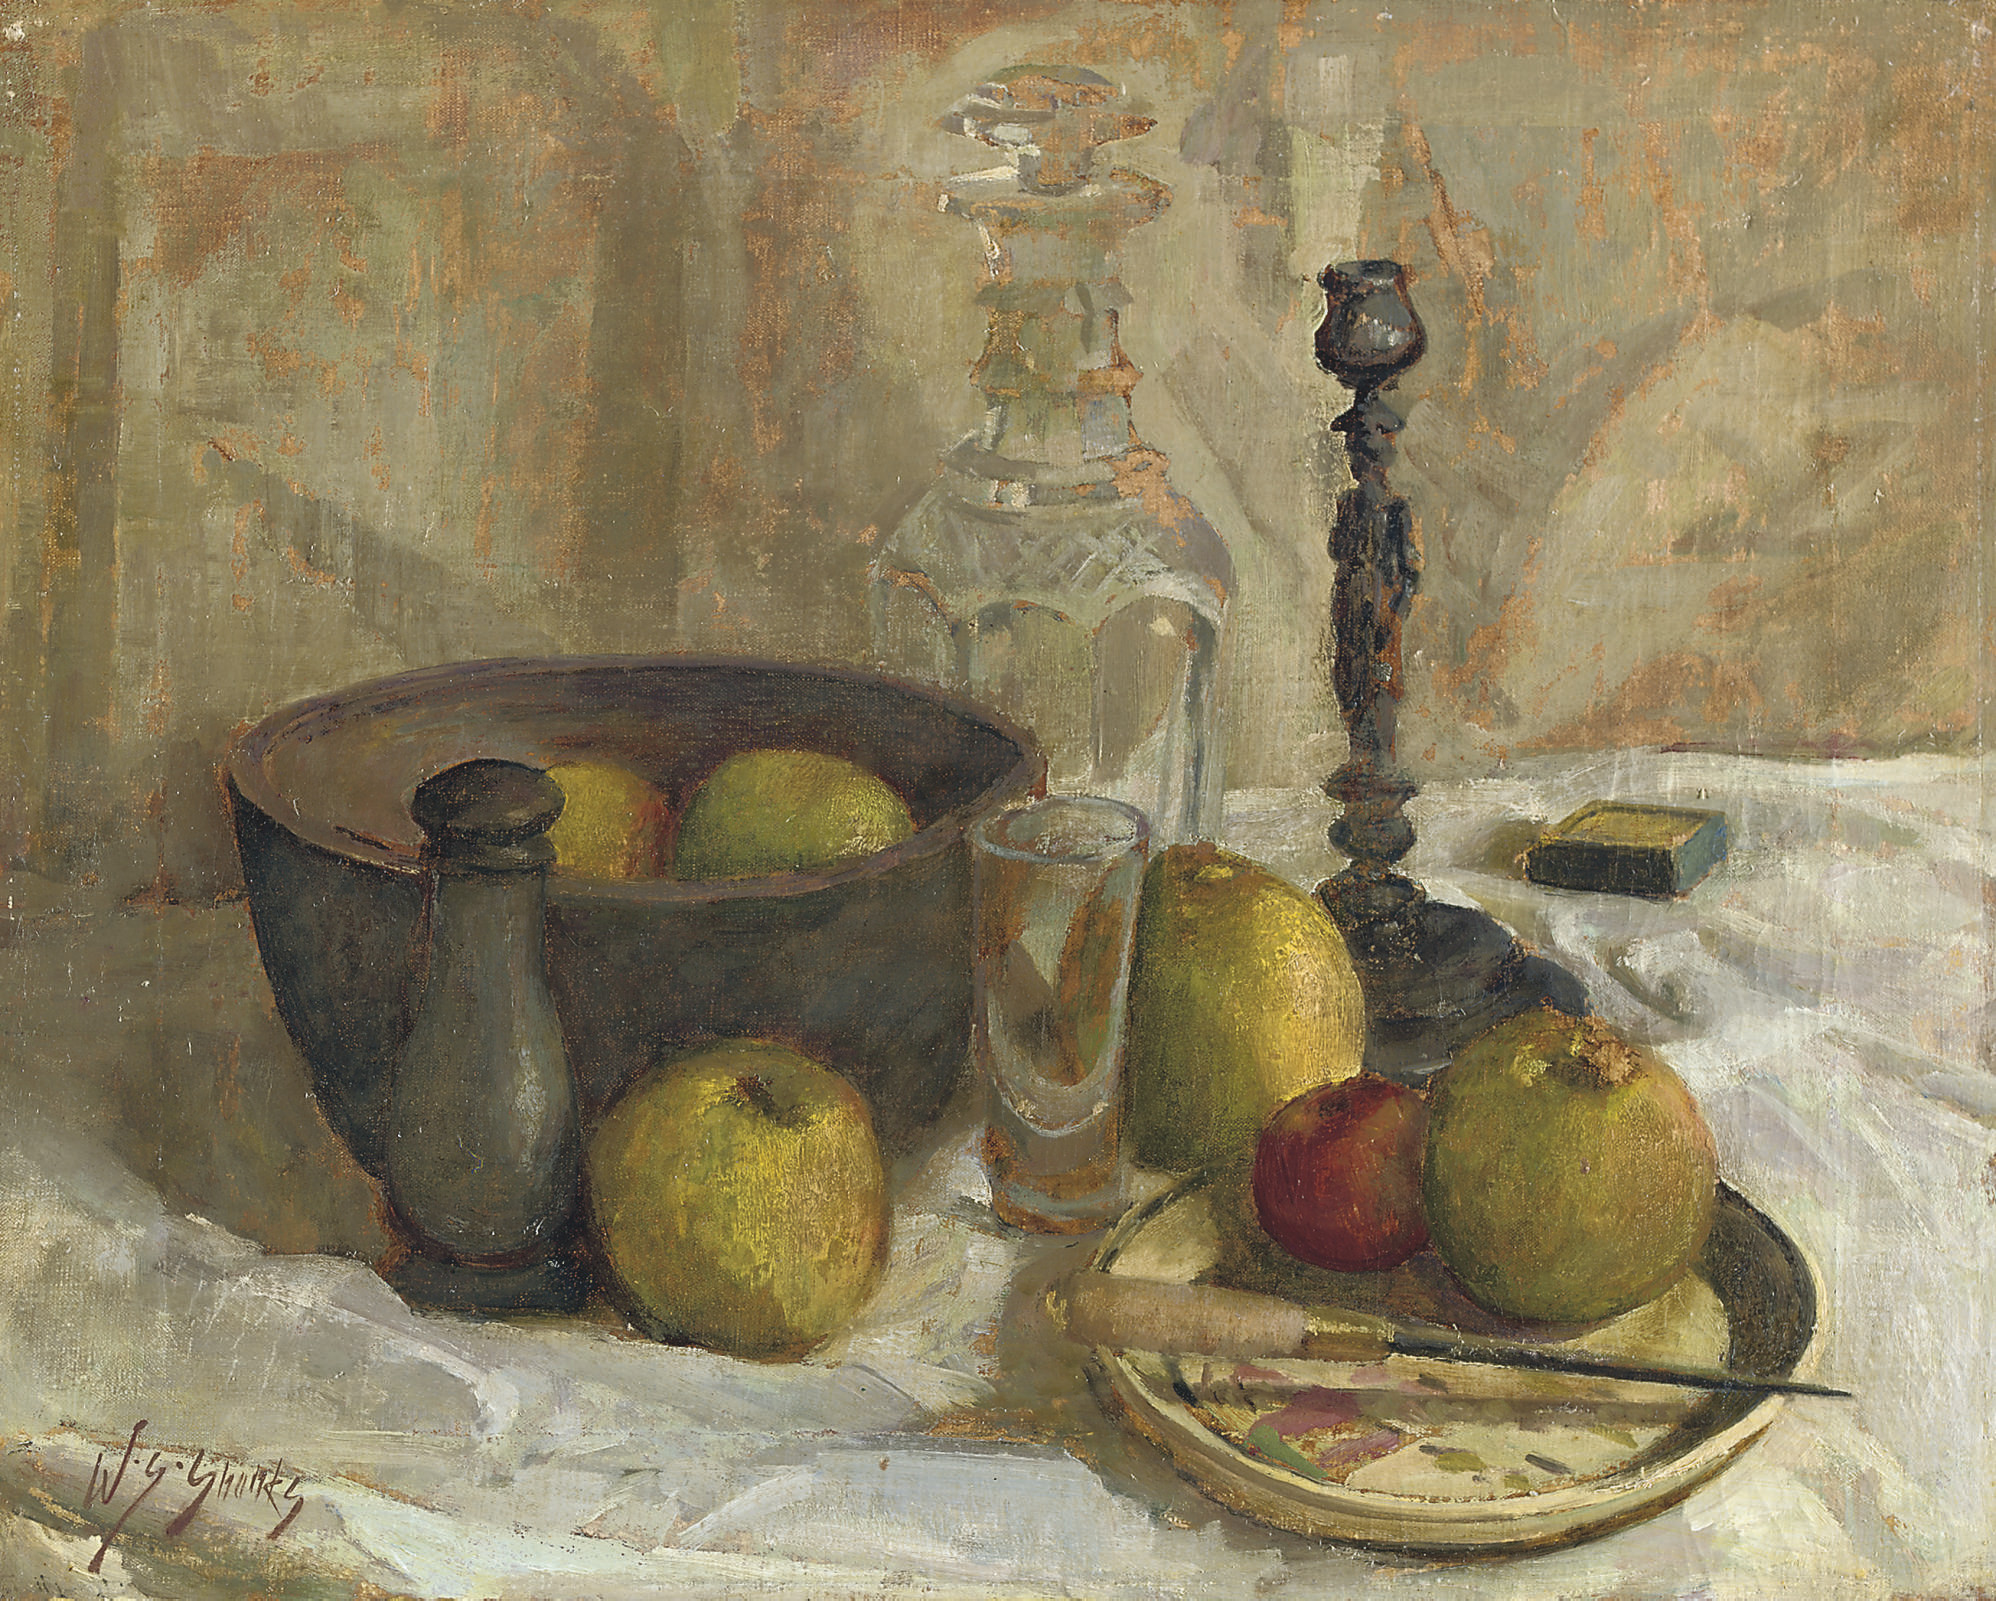 Still life with fruit and a decanter